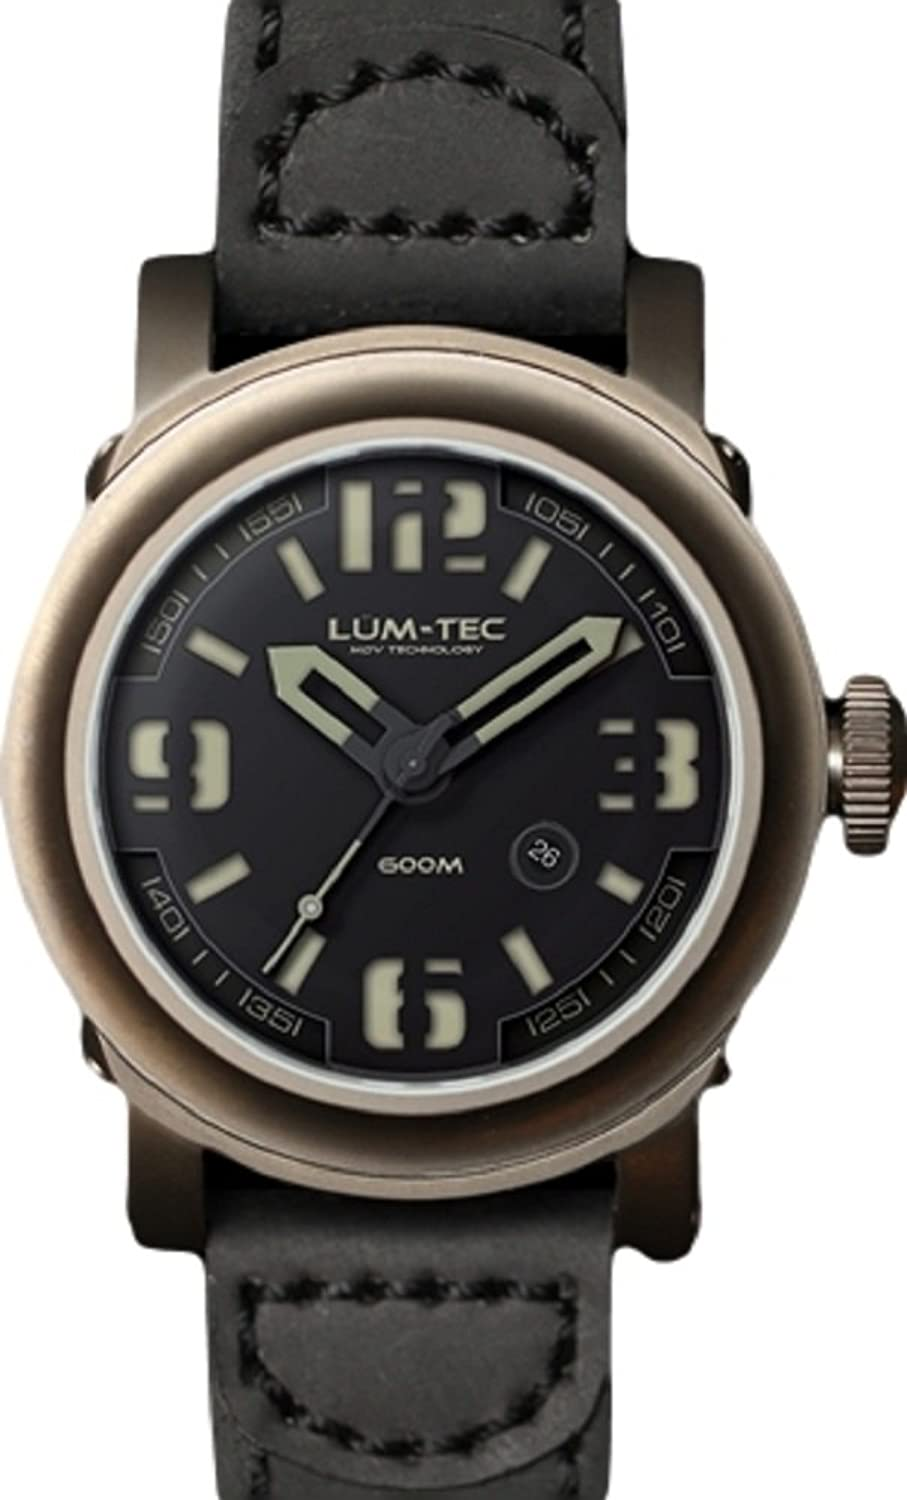 lum-tec Abyss 600 m Serie Abyss 600 U.S.A. Armbanduhr